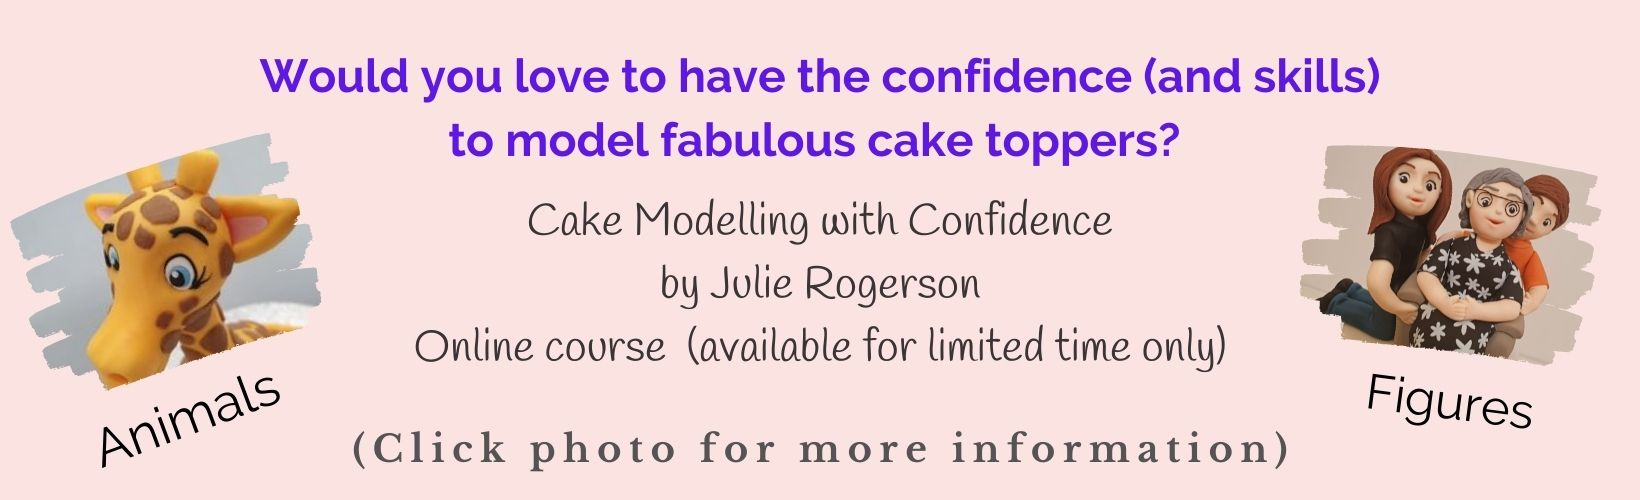 Cake modelling online course